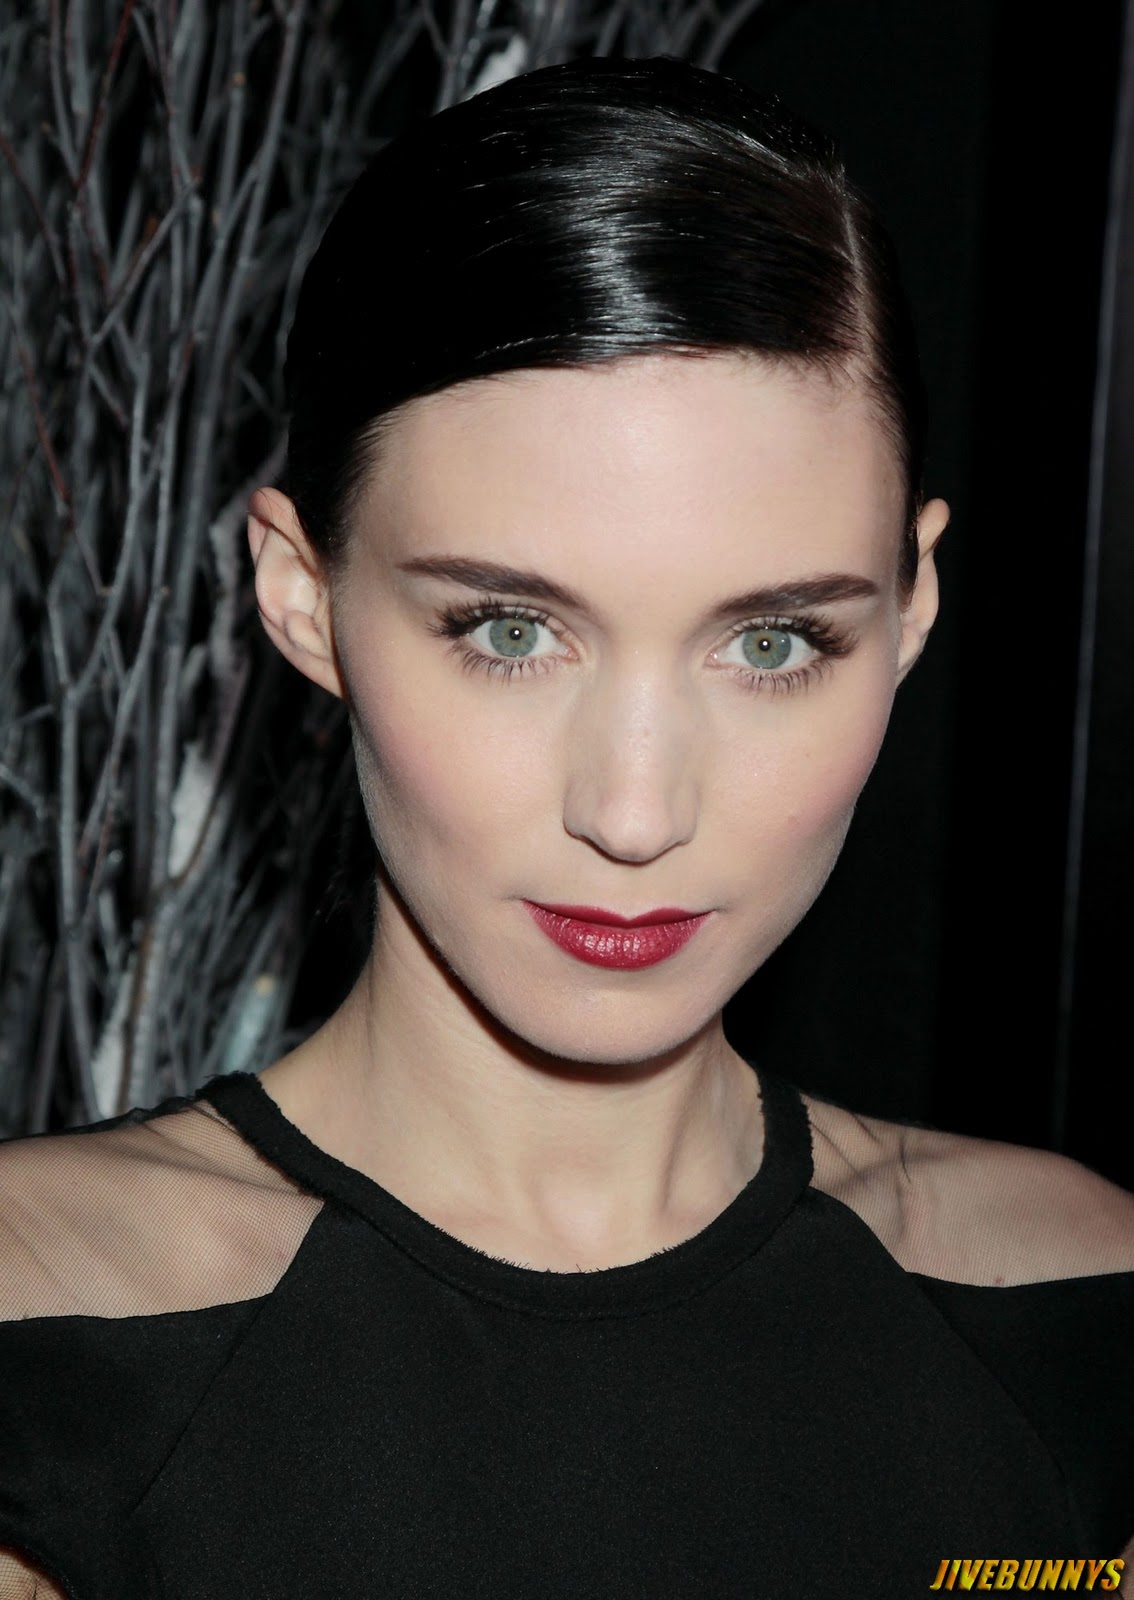 Previous Gallery Of Rooney Mara